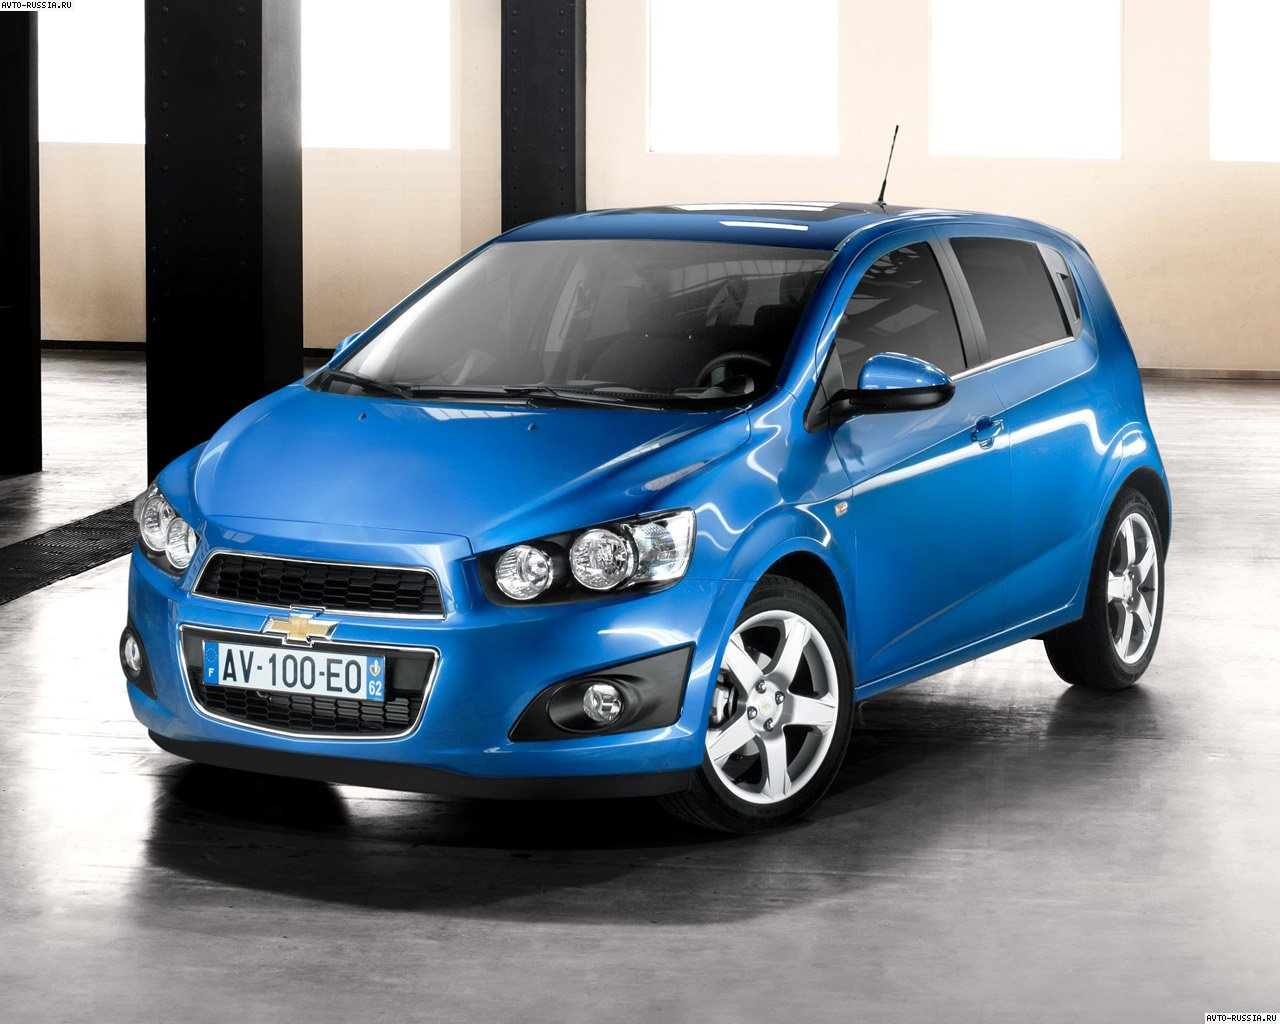 Cars chevrolet aveo (ii) hatchback 2011 #14